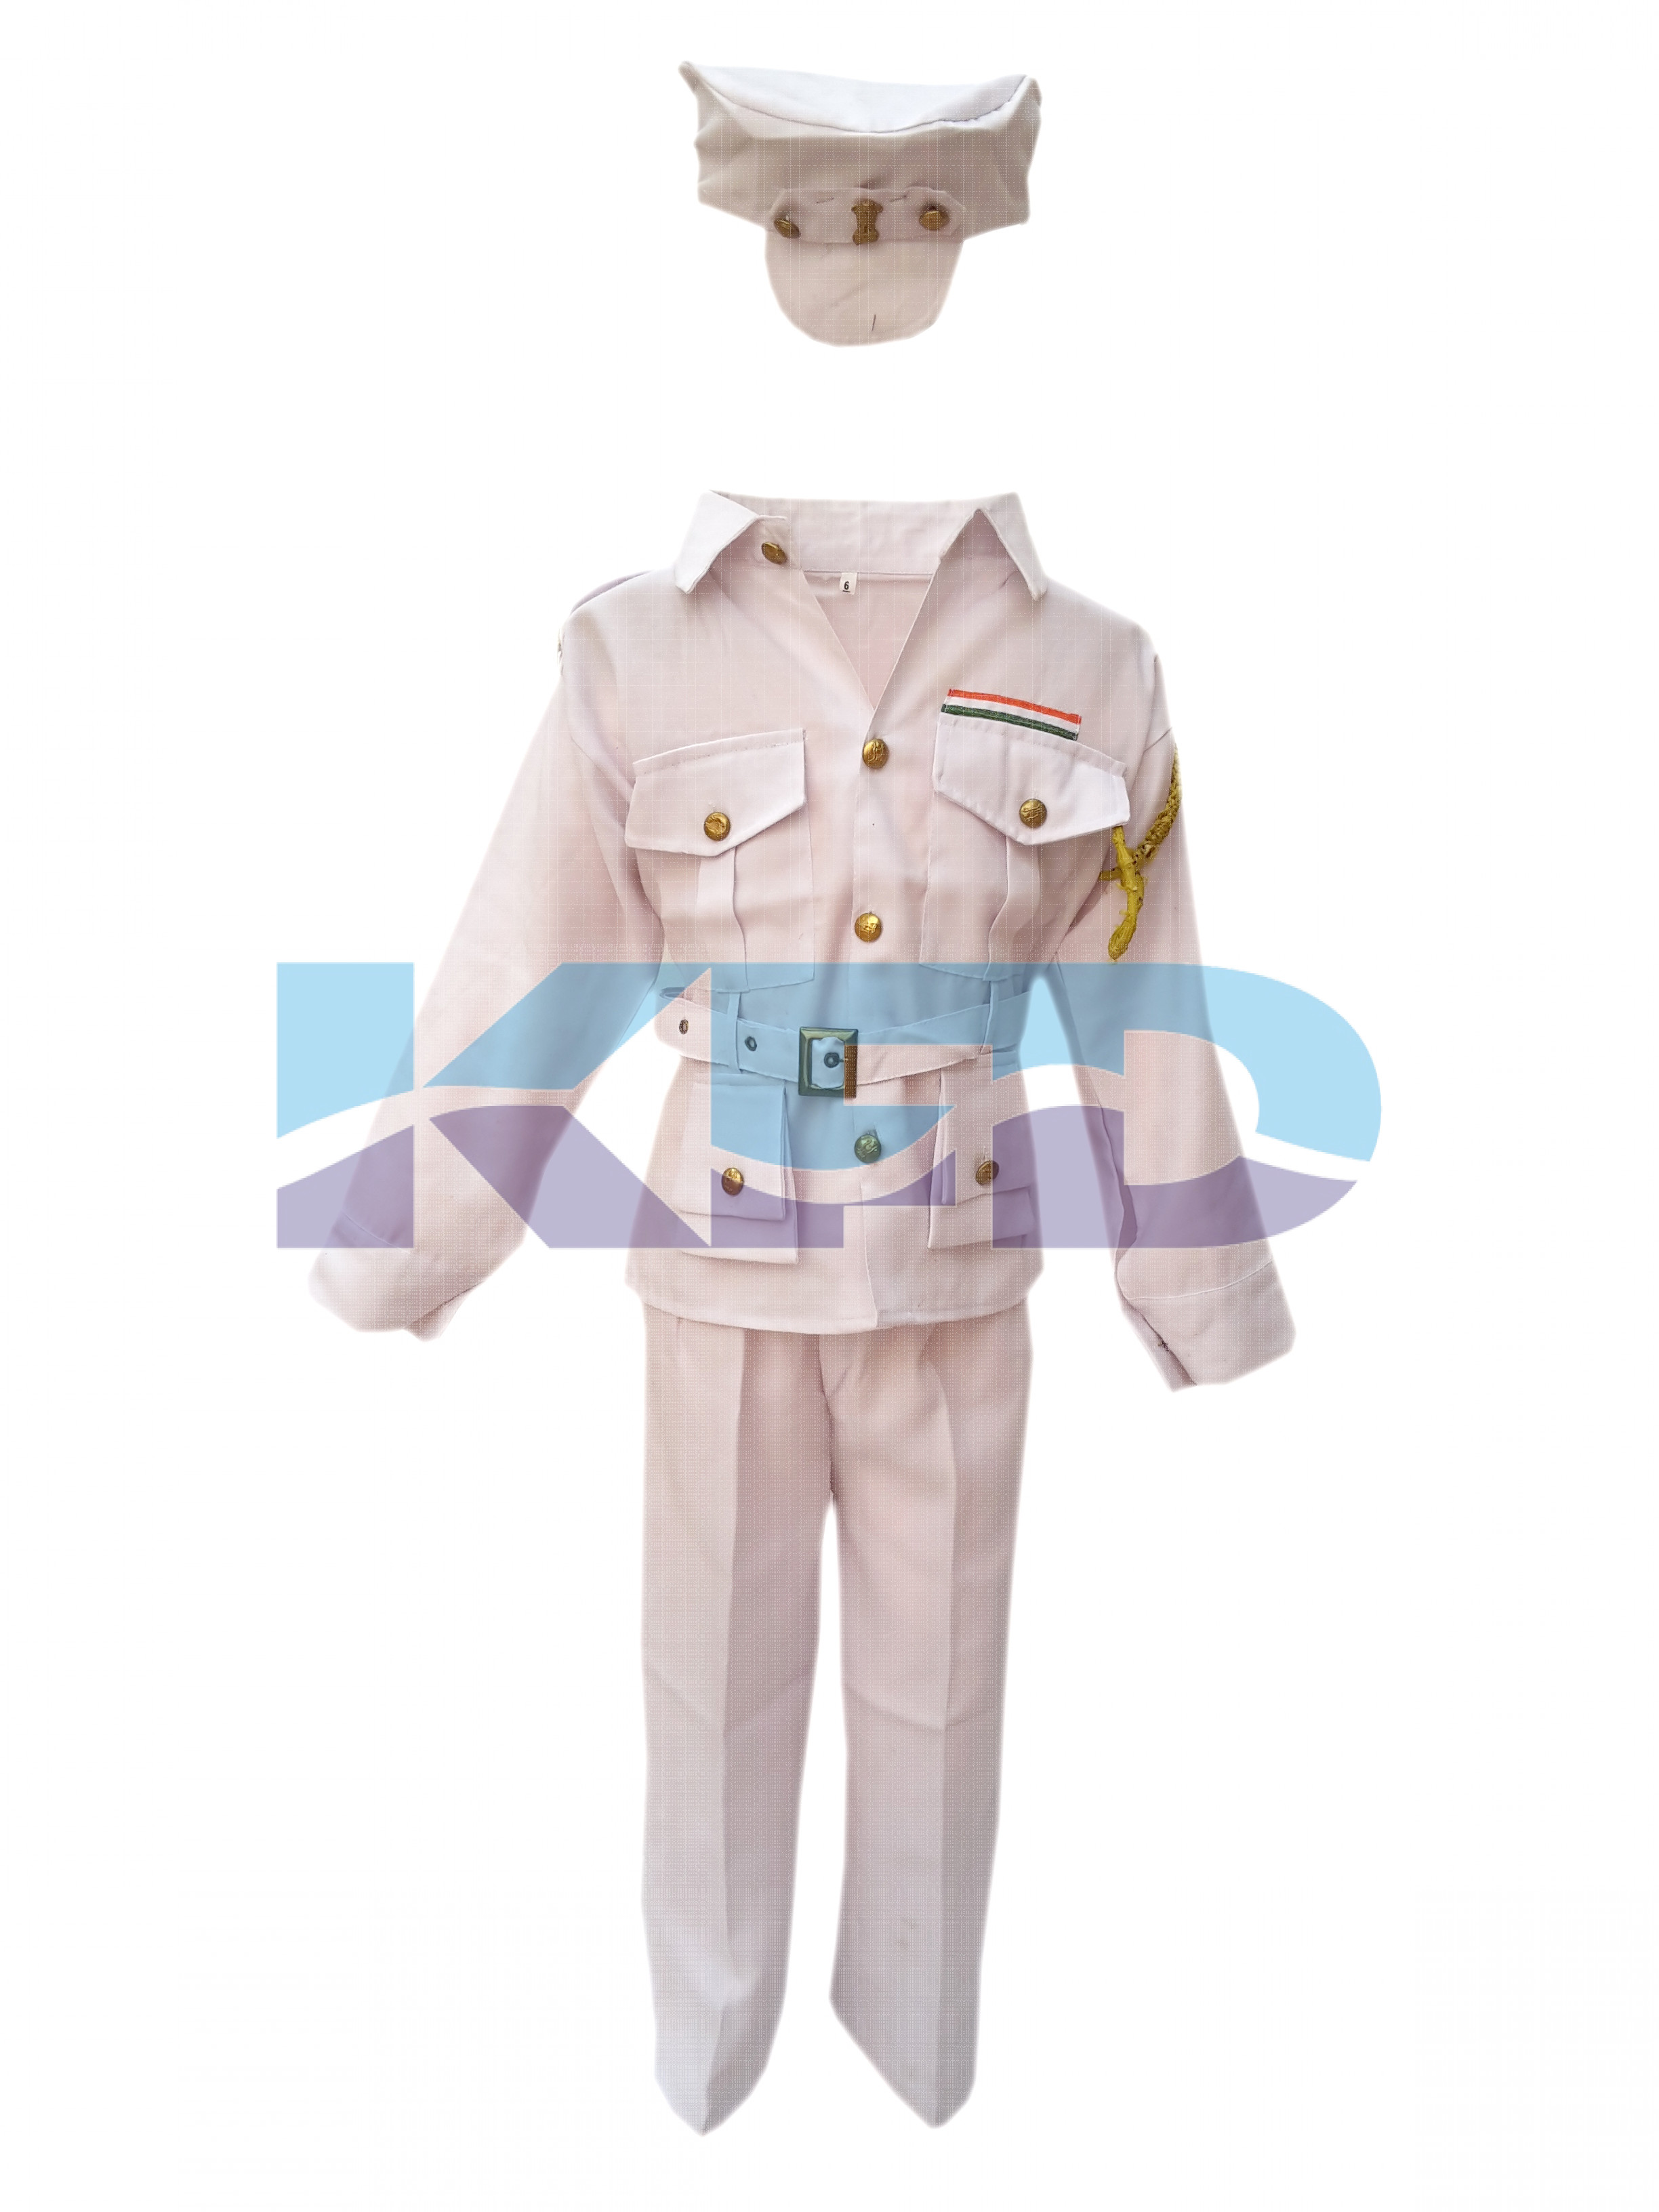 Indian Navy Fancy Dress For Kids,Our Helper/National Hero Costume For Annual Function/Theme Party/Competition/Stage Shows Dress